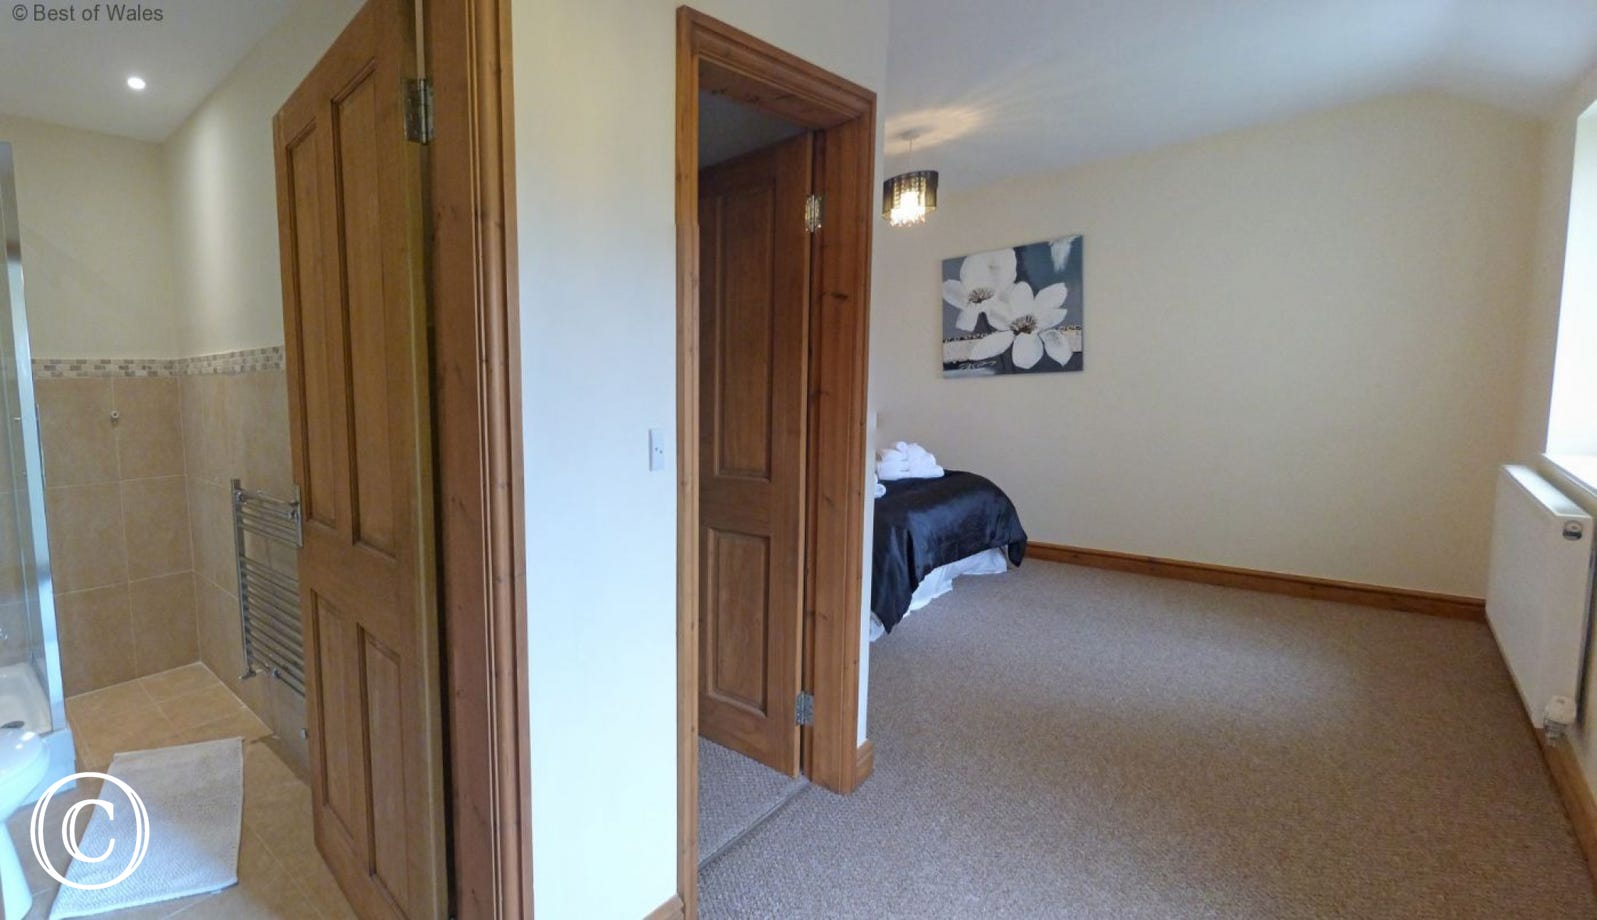 En suite facilities comprising enclosed shower cubicle, WC and wash basin.